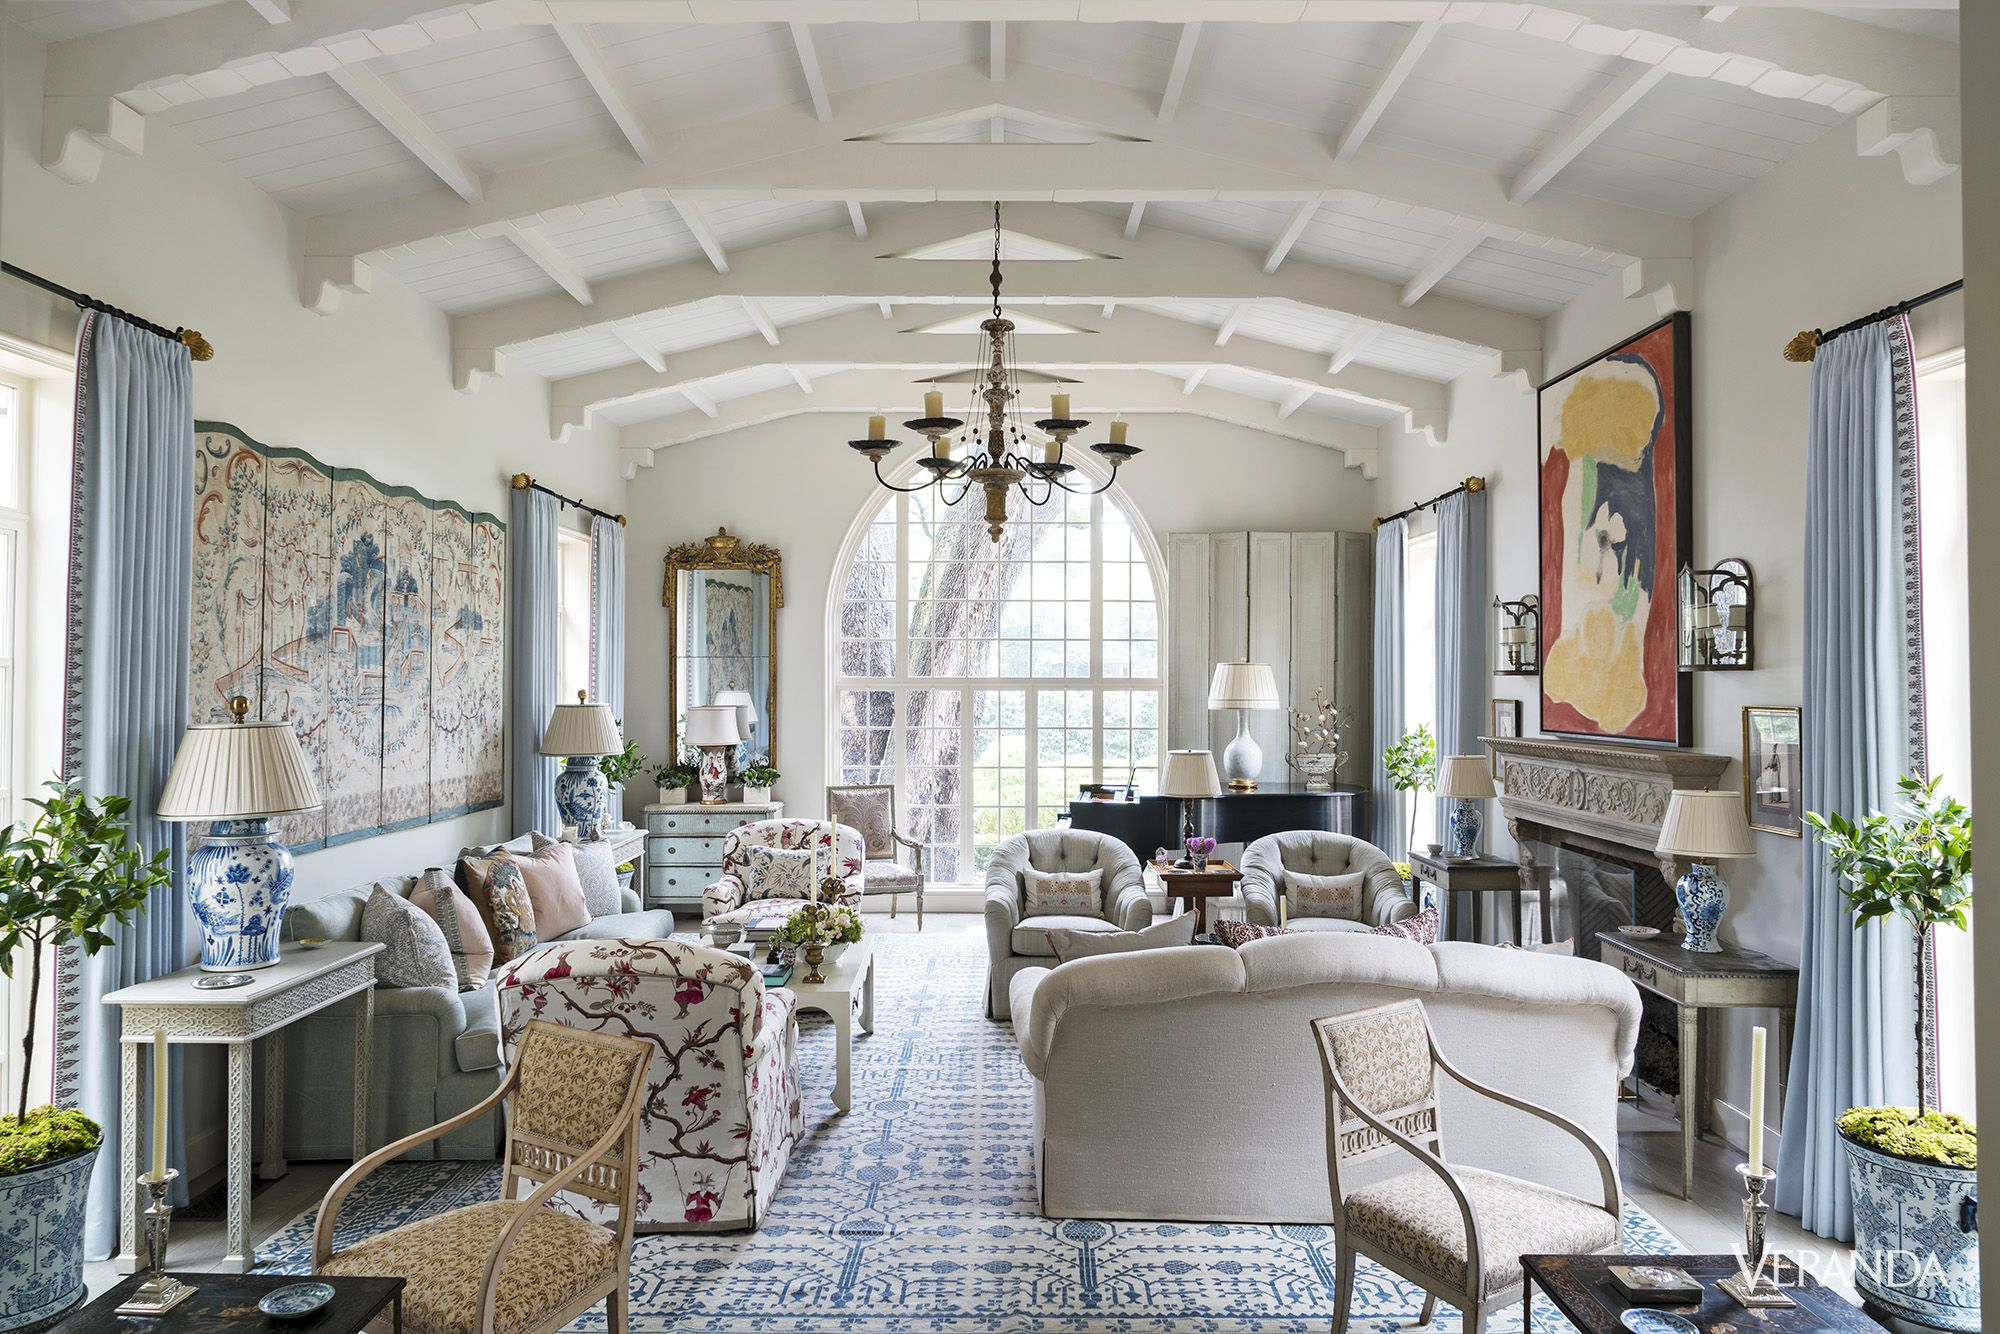 image. James Merrell. Spanish Colonial Living Room